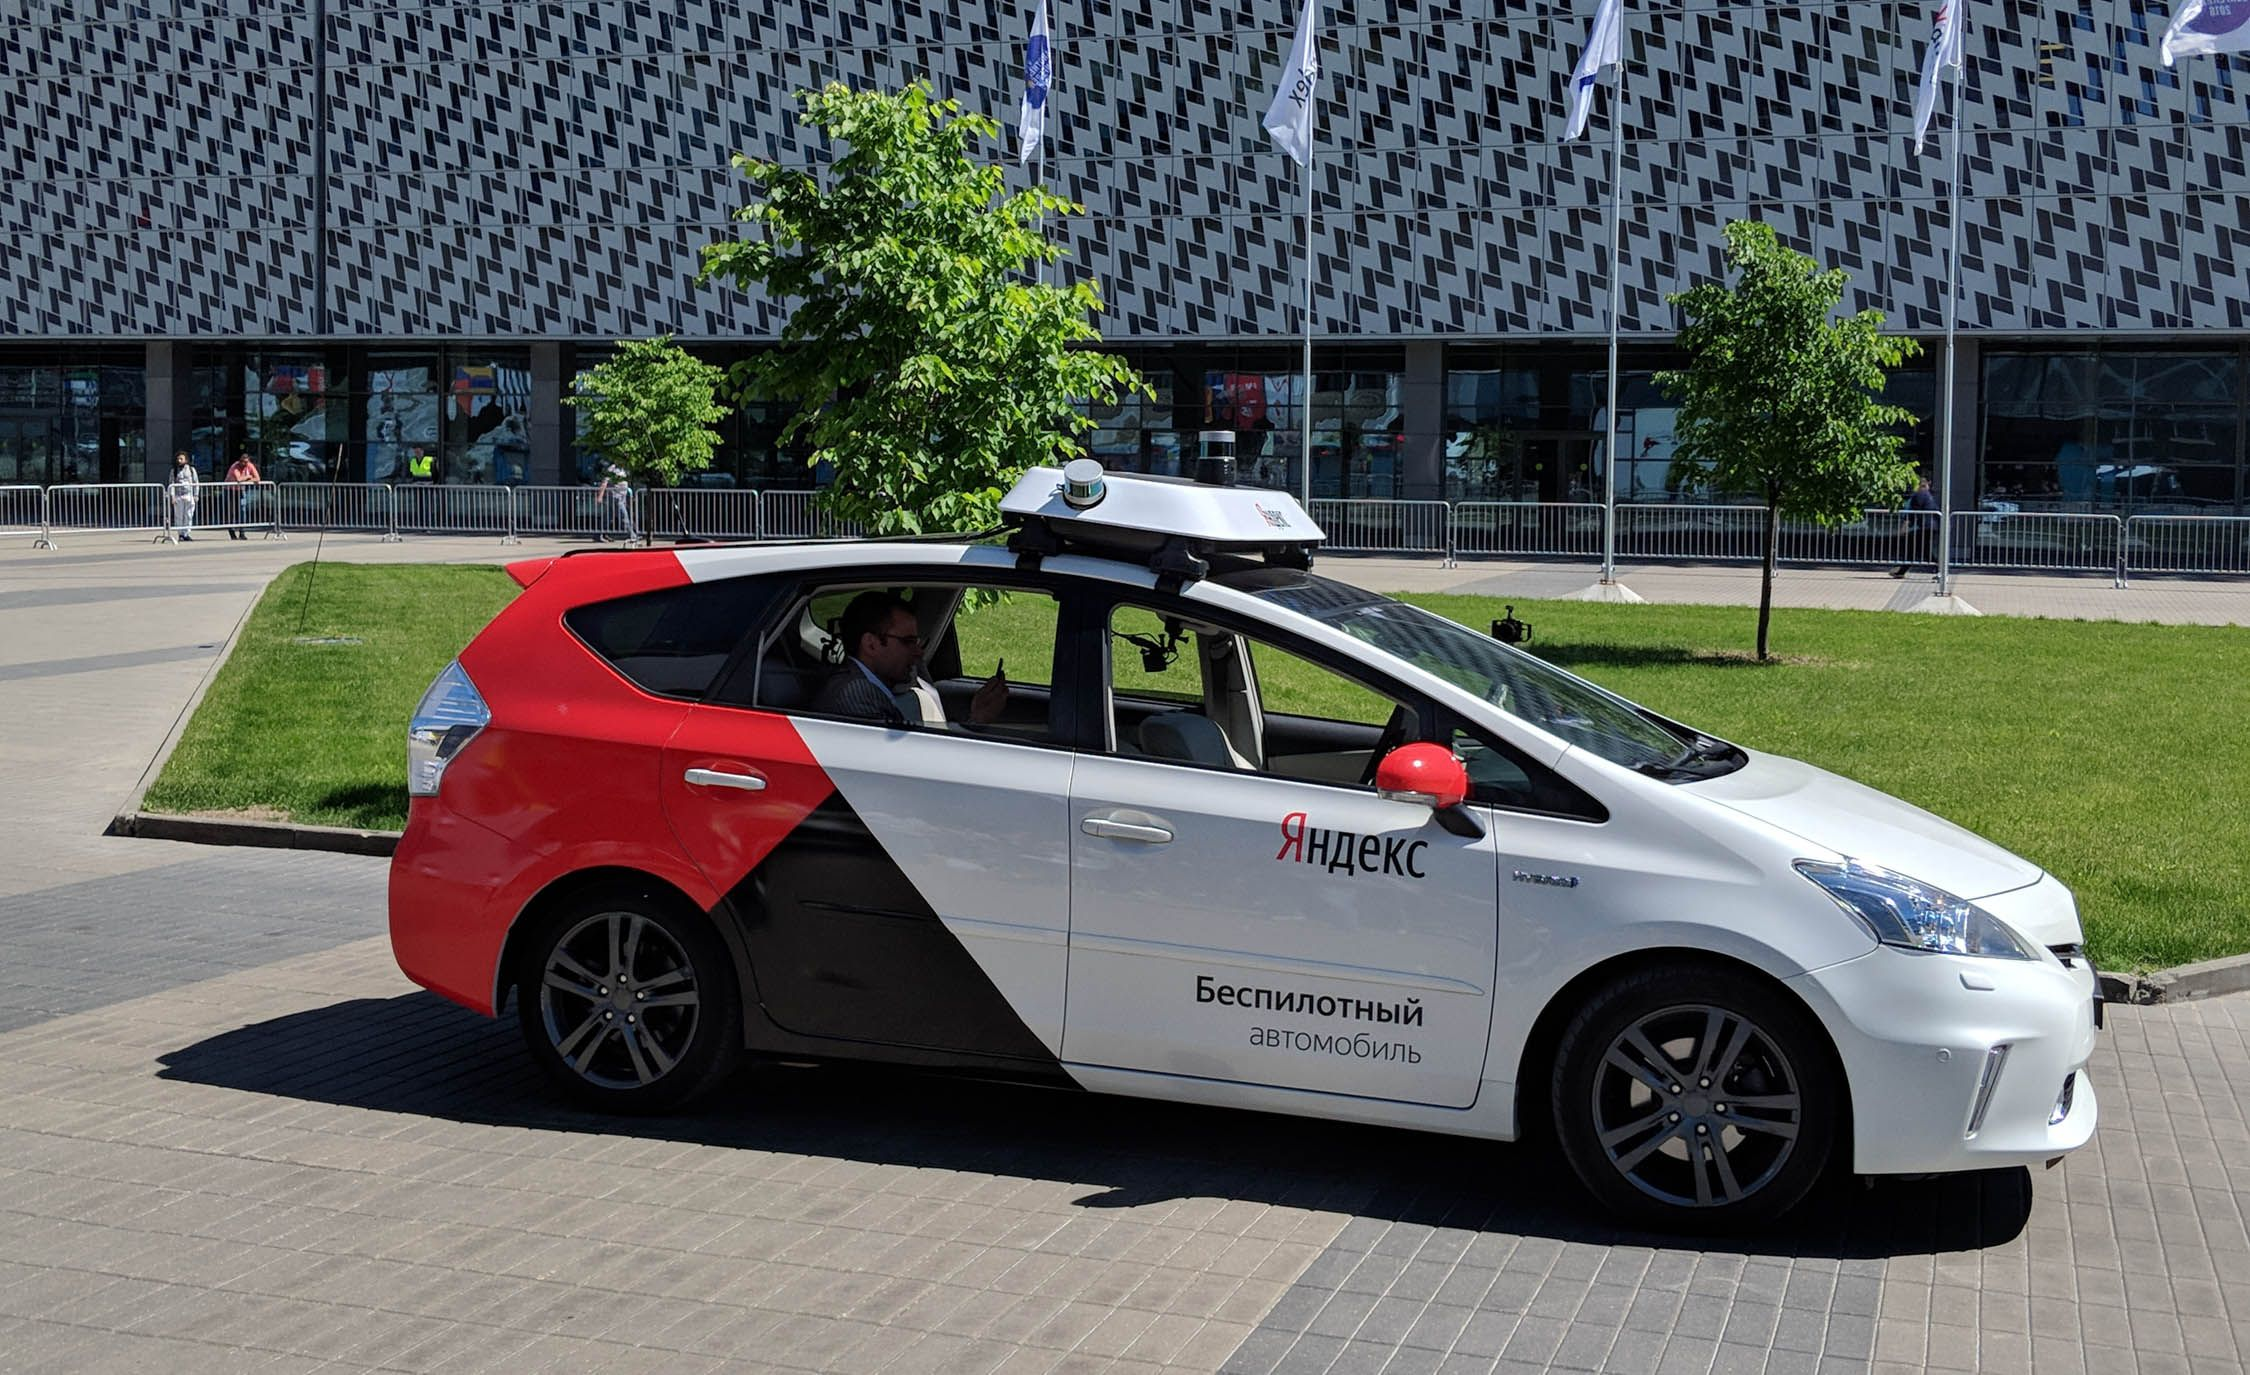 Image result for yandex self driving car